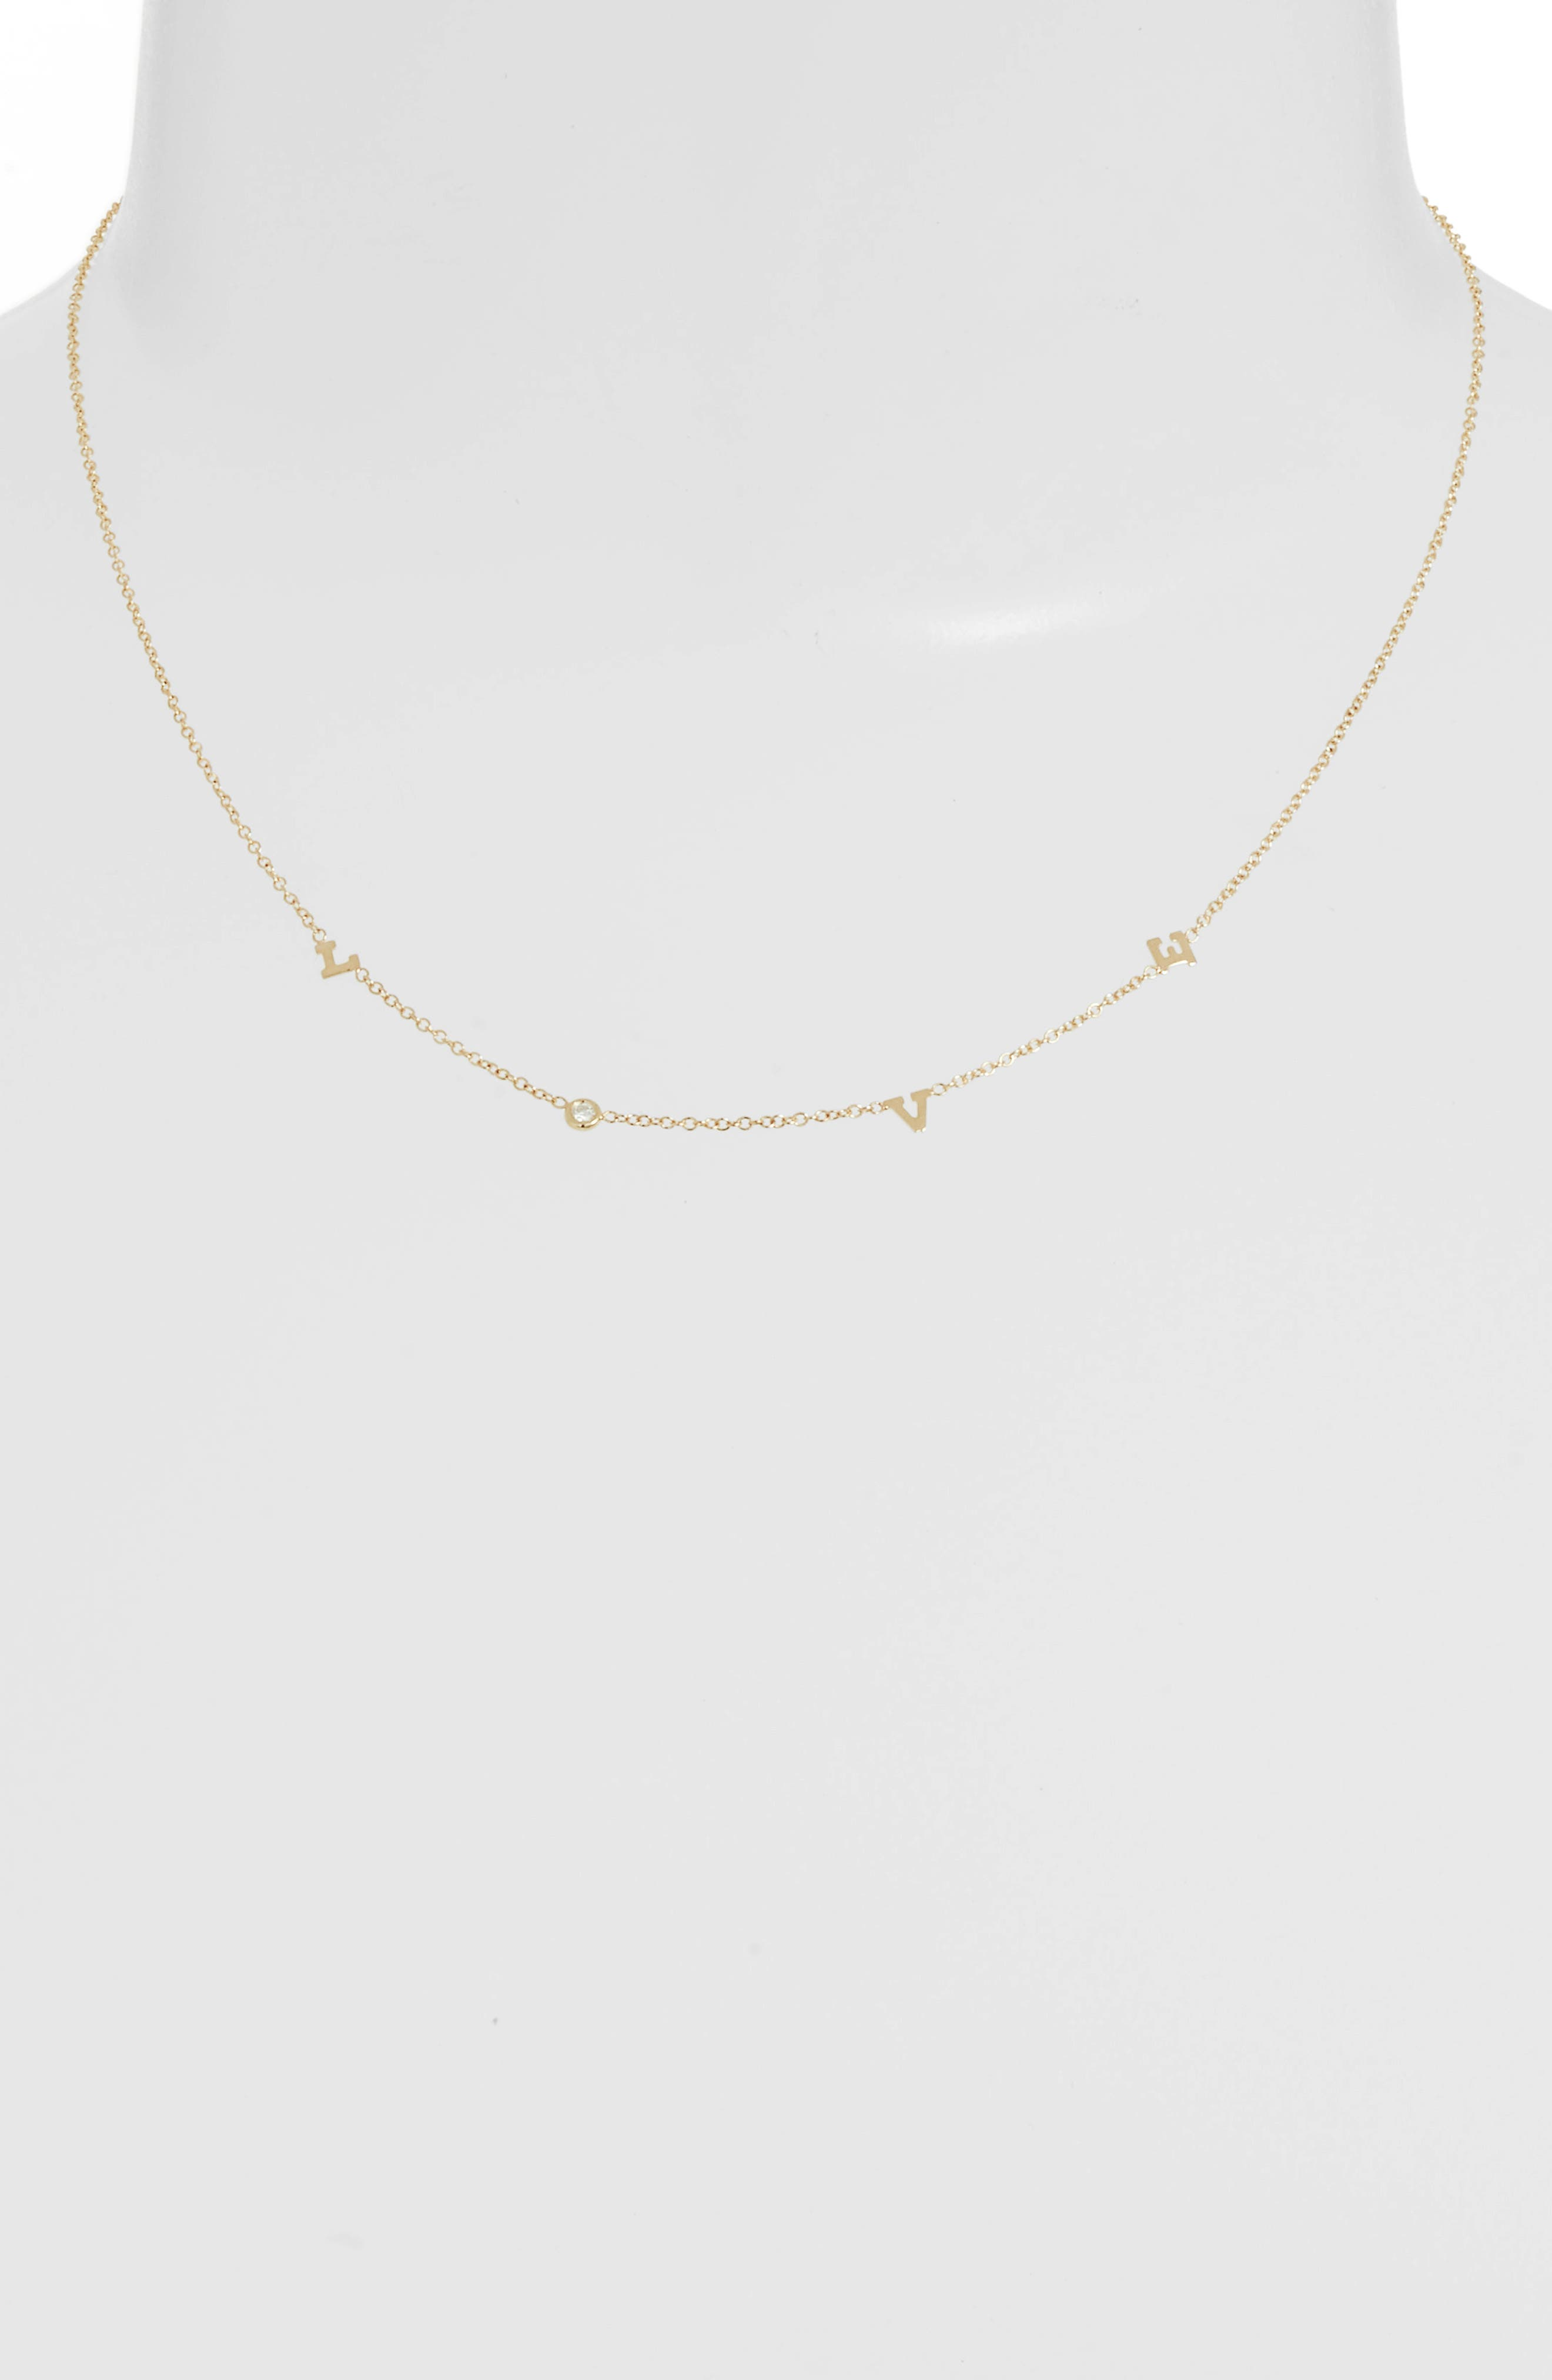 Itty Bitty Love Diamond Necklace,                             Main thumbnail 1, color,                             Yellow Gold